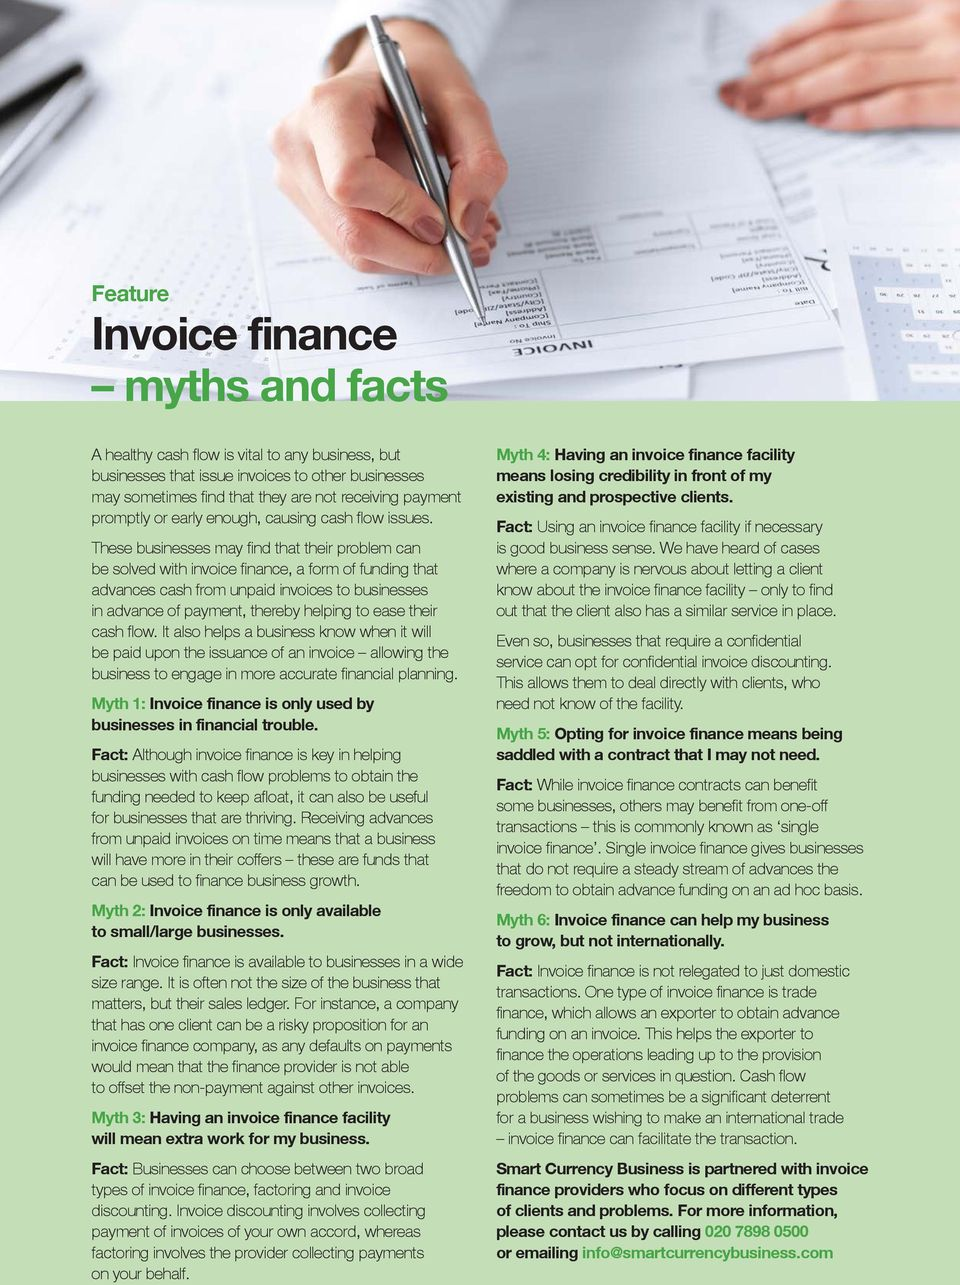 These businesses may find that their problem can be solved with invoice finance, a form of funding that advances cash from unpaid invoices to businesses in advance of payment, thereby helping to ease